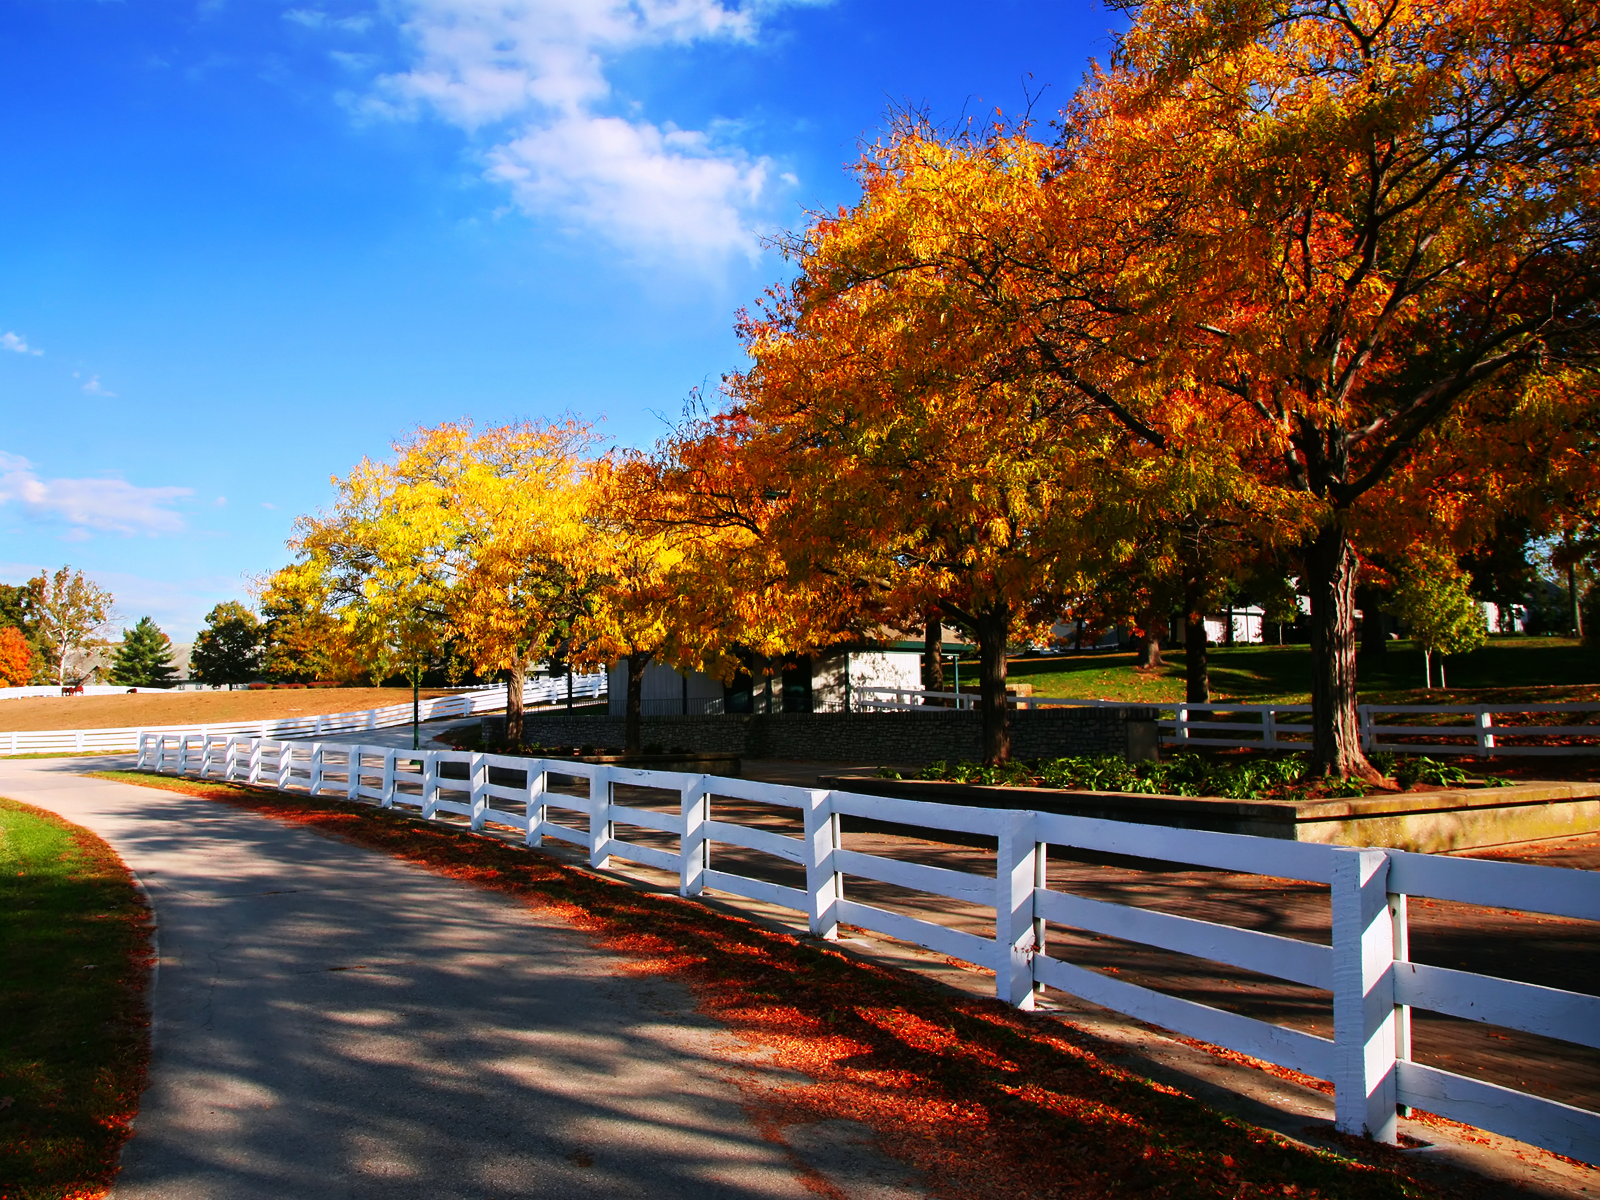 Horse Farm Autumn wallpaper This Years Election is About Nothing 1600x1200